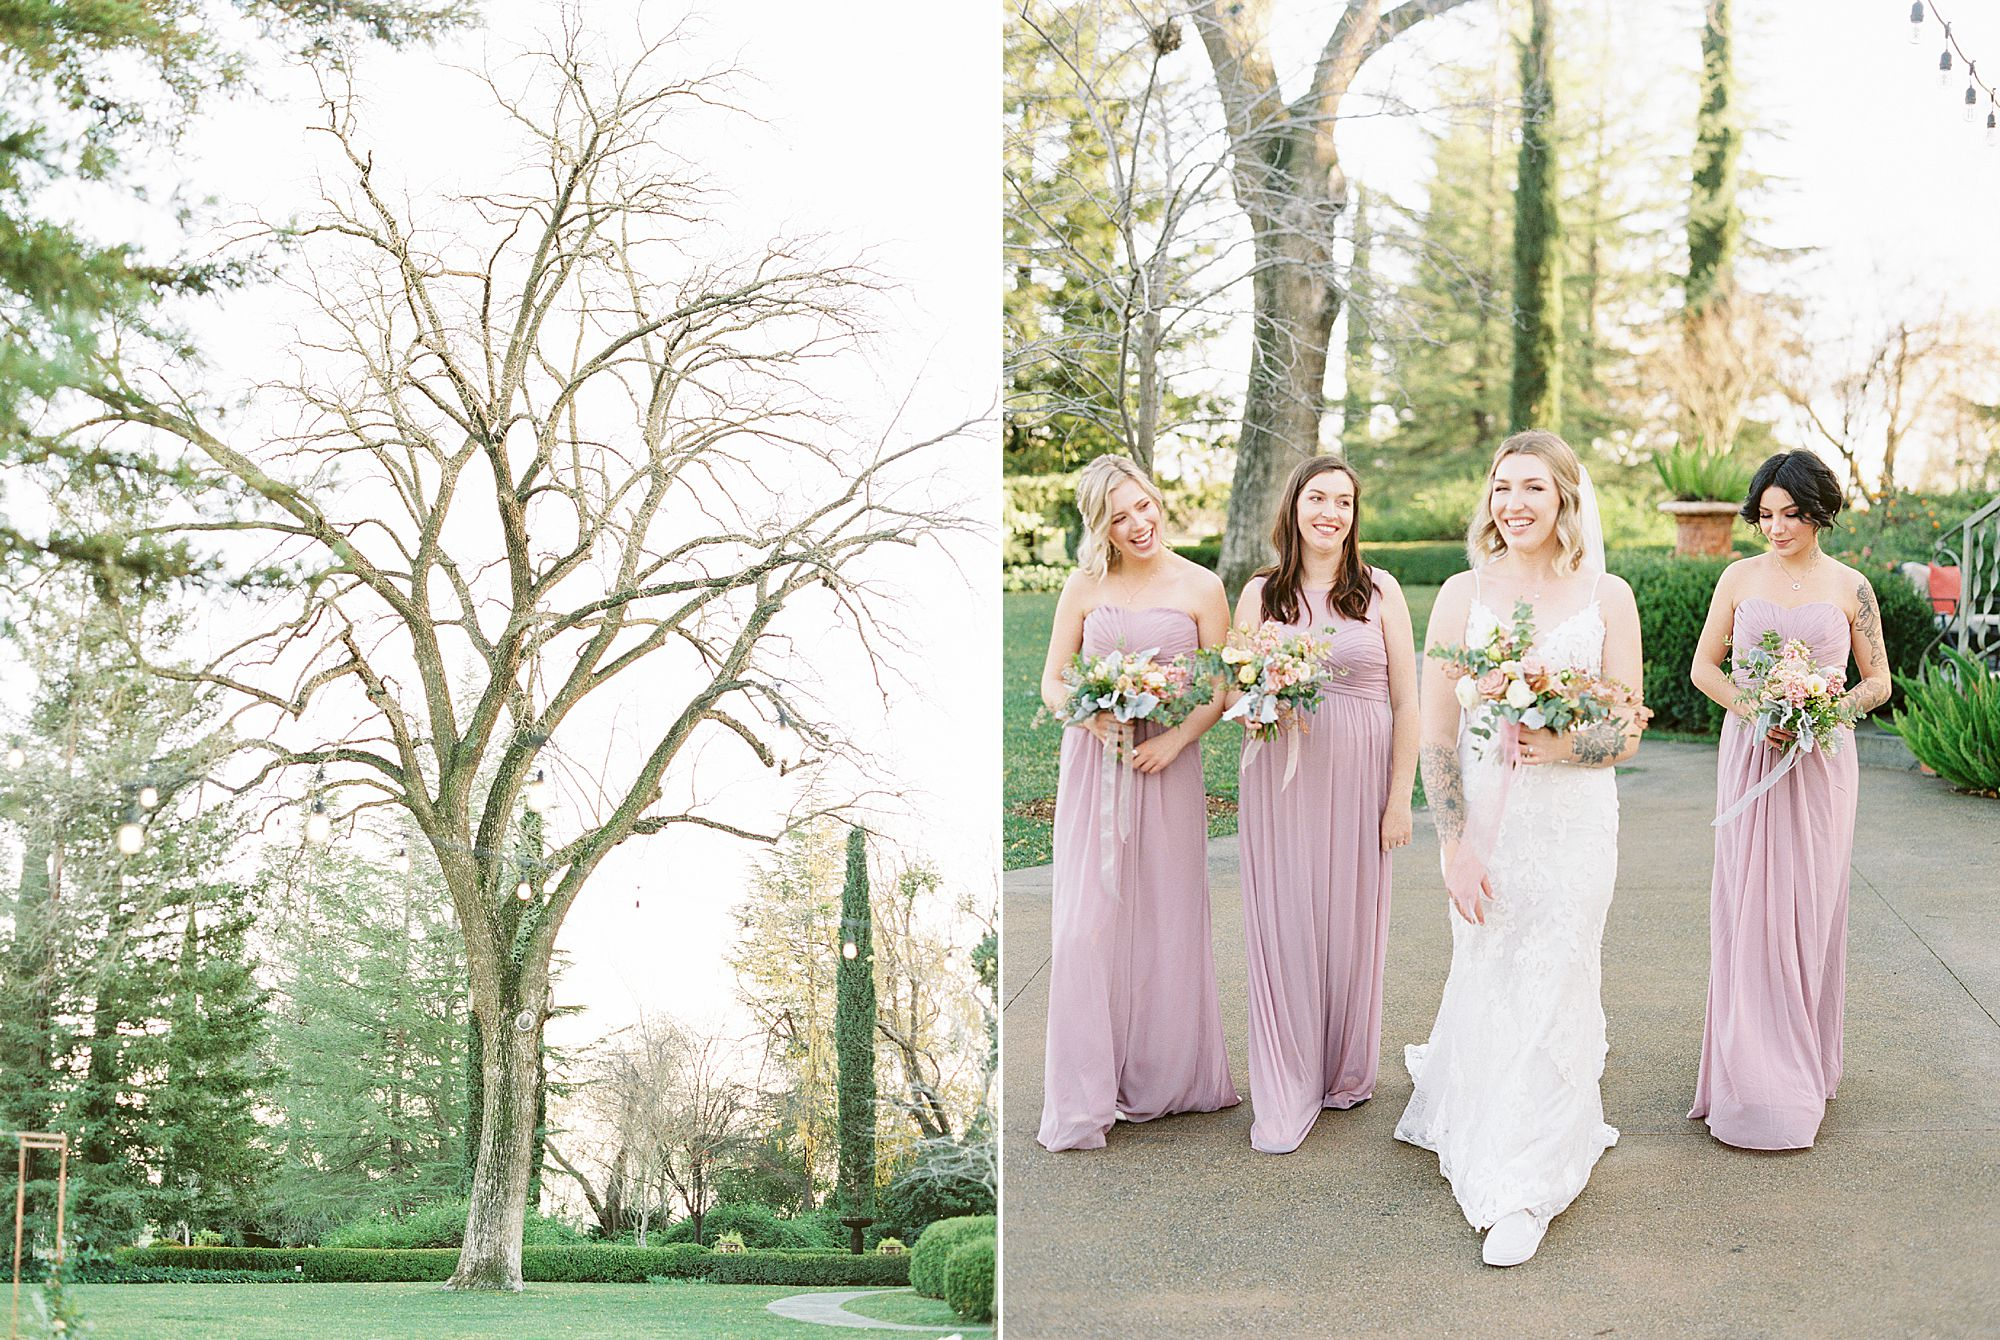 Inn at Park Winters Wedding - Lindsay and Shane - Ashley Baumgartner - Park Winters Wedding Photographer - Sacramento Wedding Photographer_0041.jpg